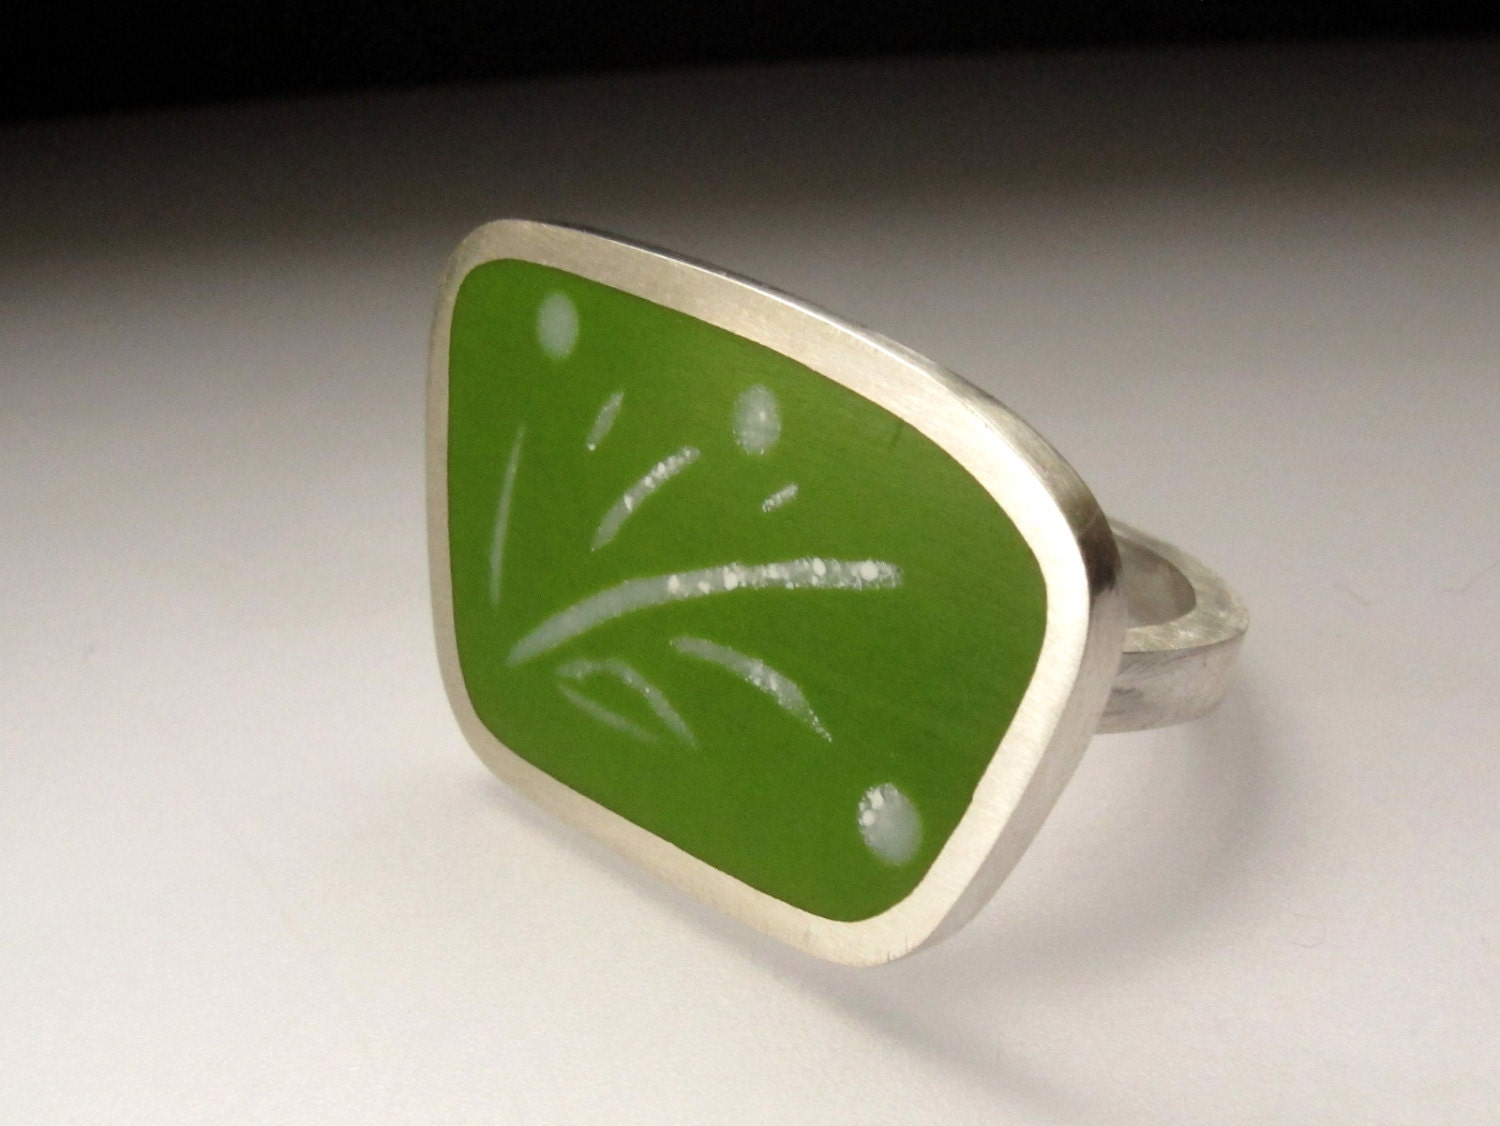 Bold Geometric Resin Ring in Pesto Green - Silver Statement Rings - Unusual Handmade Ring - Graphico - QuercusSilver